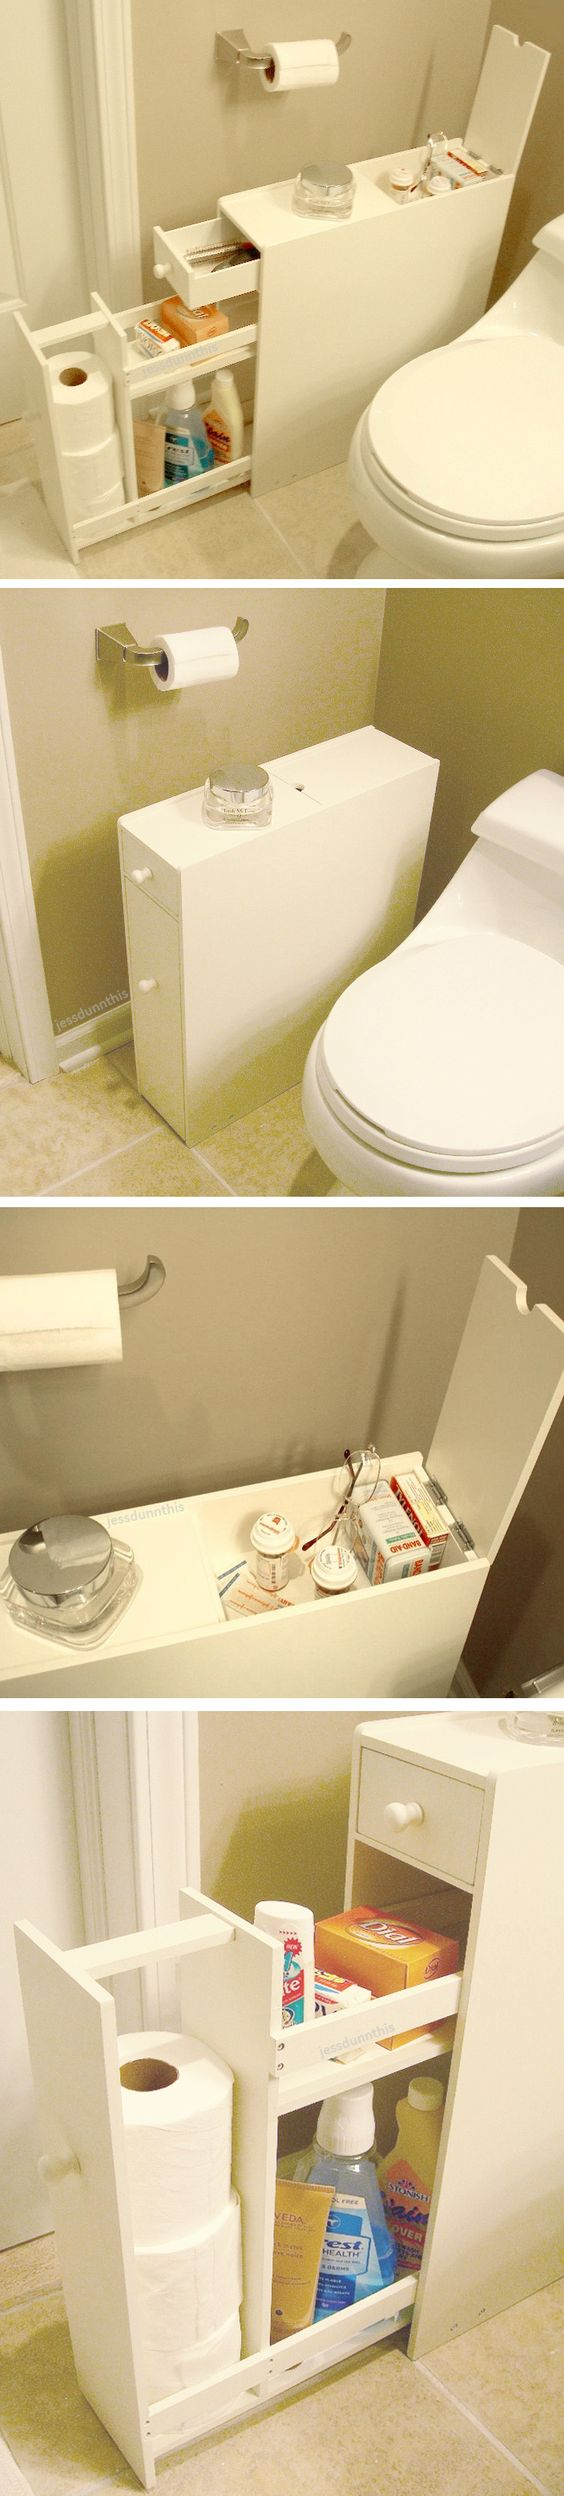 25 fascinuj cich urob si s m n padov na organiz ciu - Space saver furniture for bathroom ...